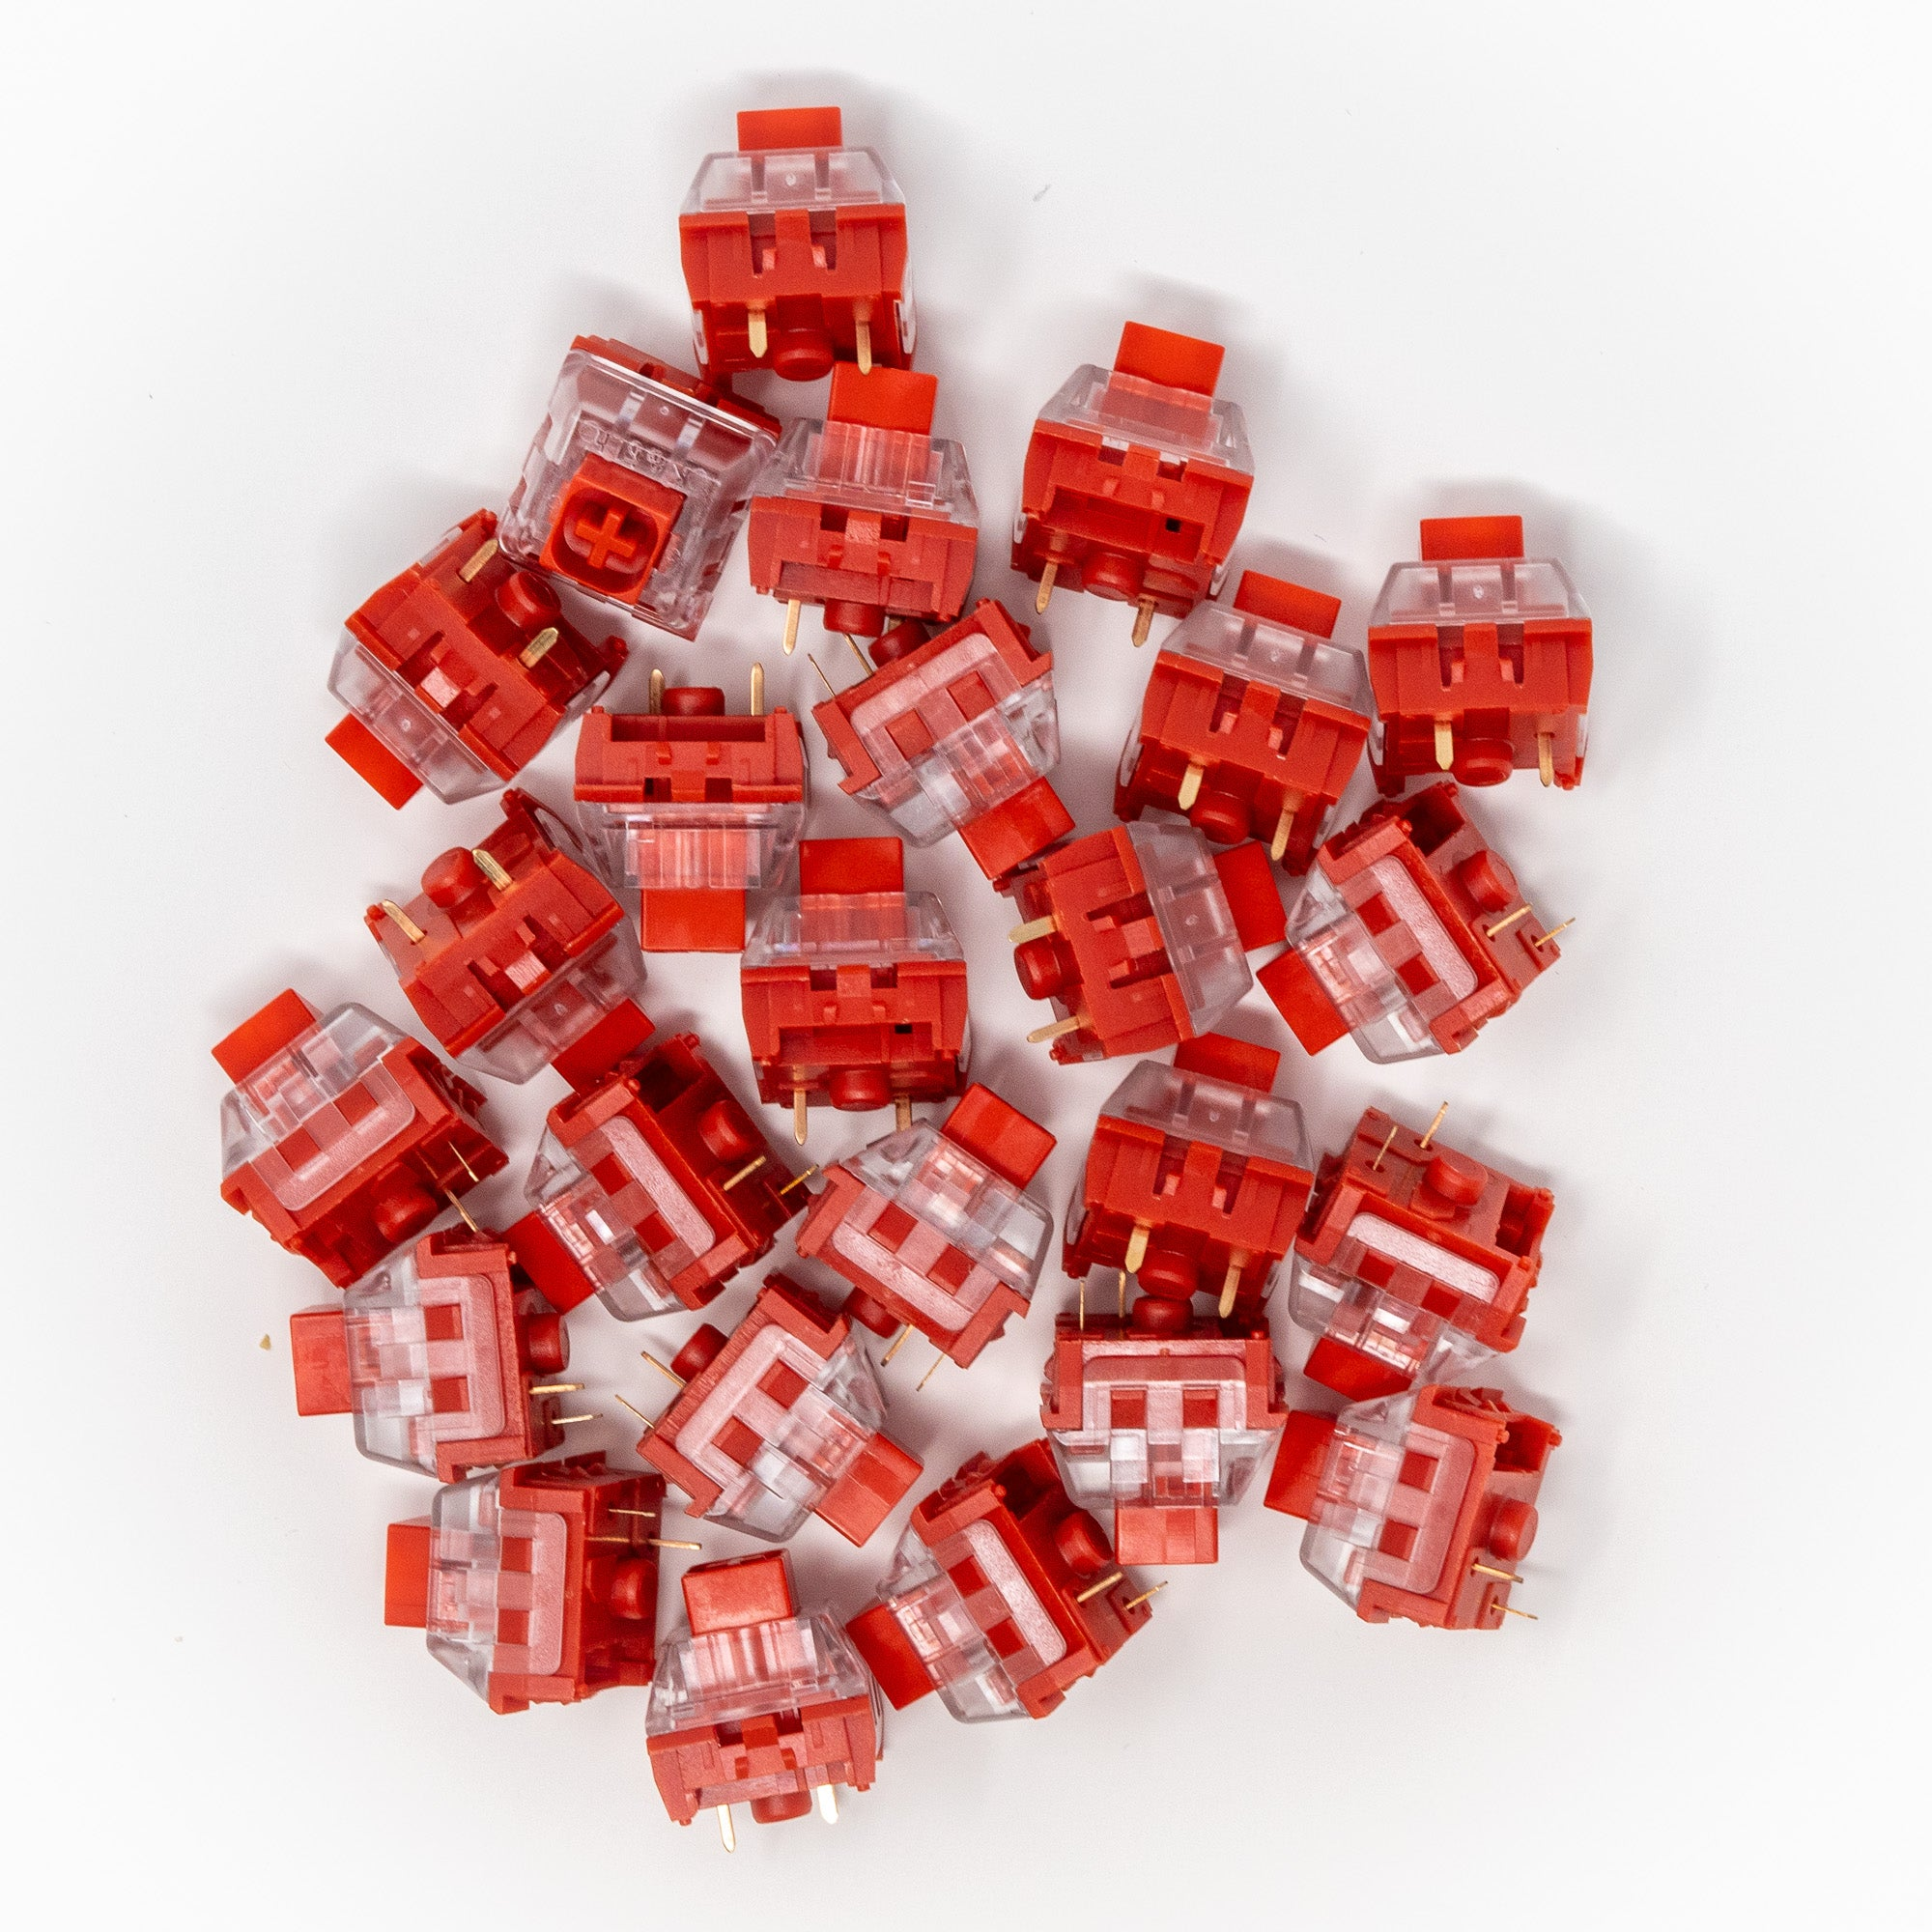 Kailh BOX Chinese Red Keyswitches x 25